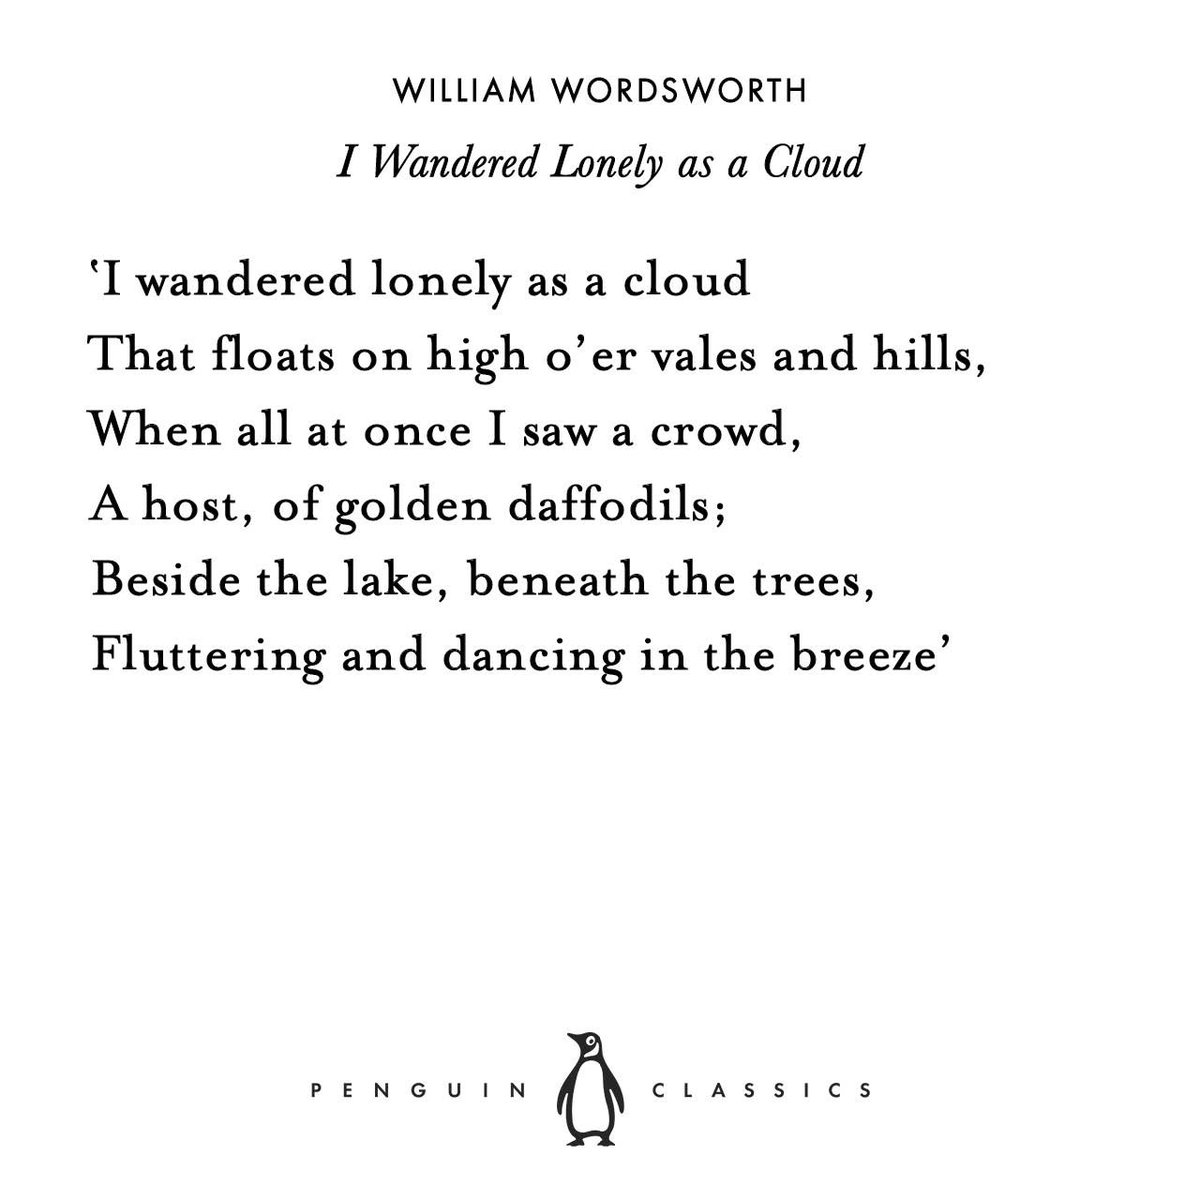 Happy #WorldPoetryDay! https://t.co/S6UlHtY6R1